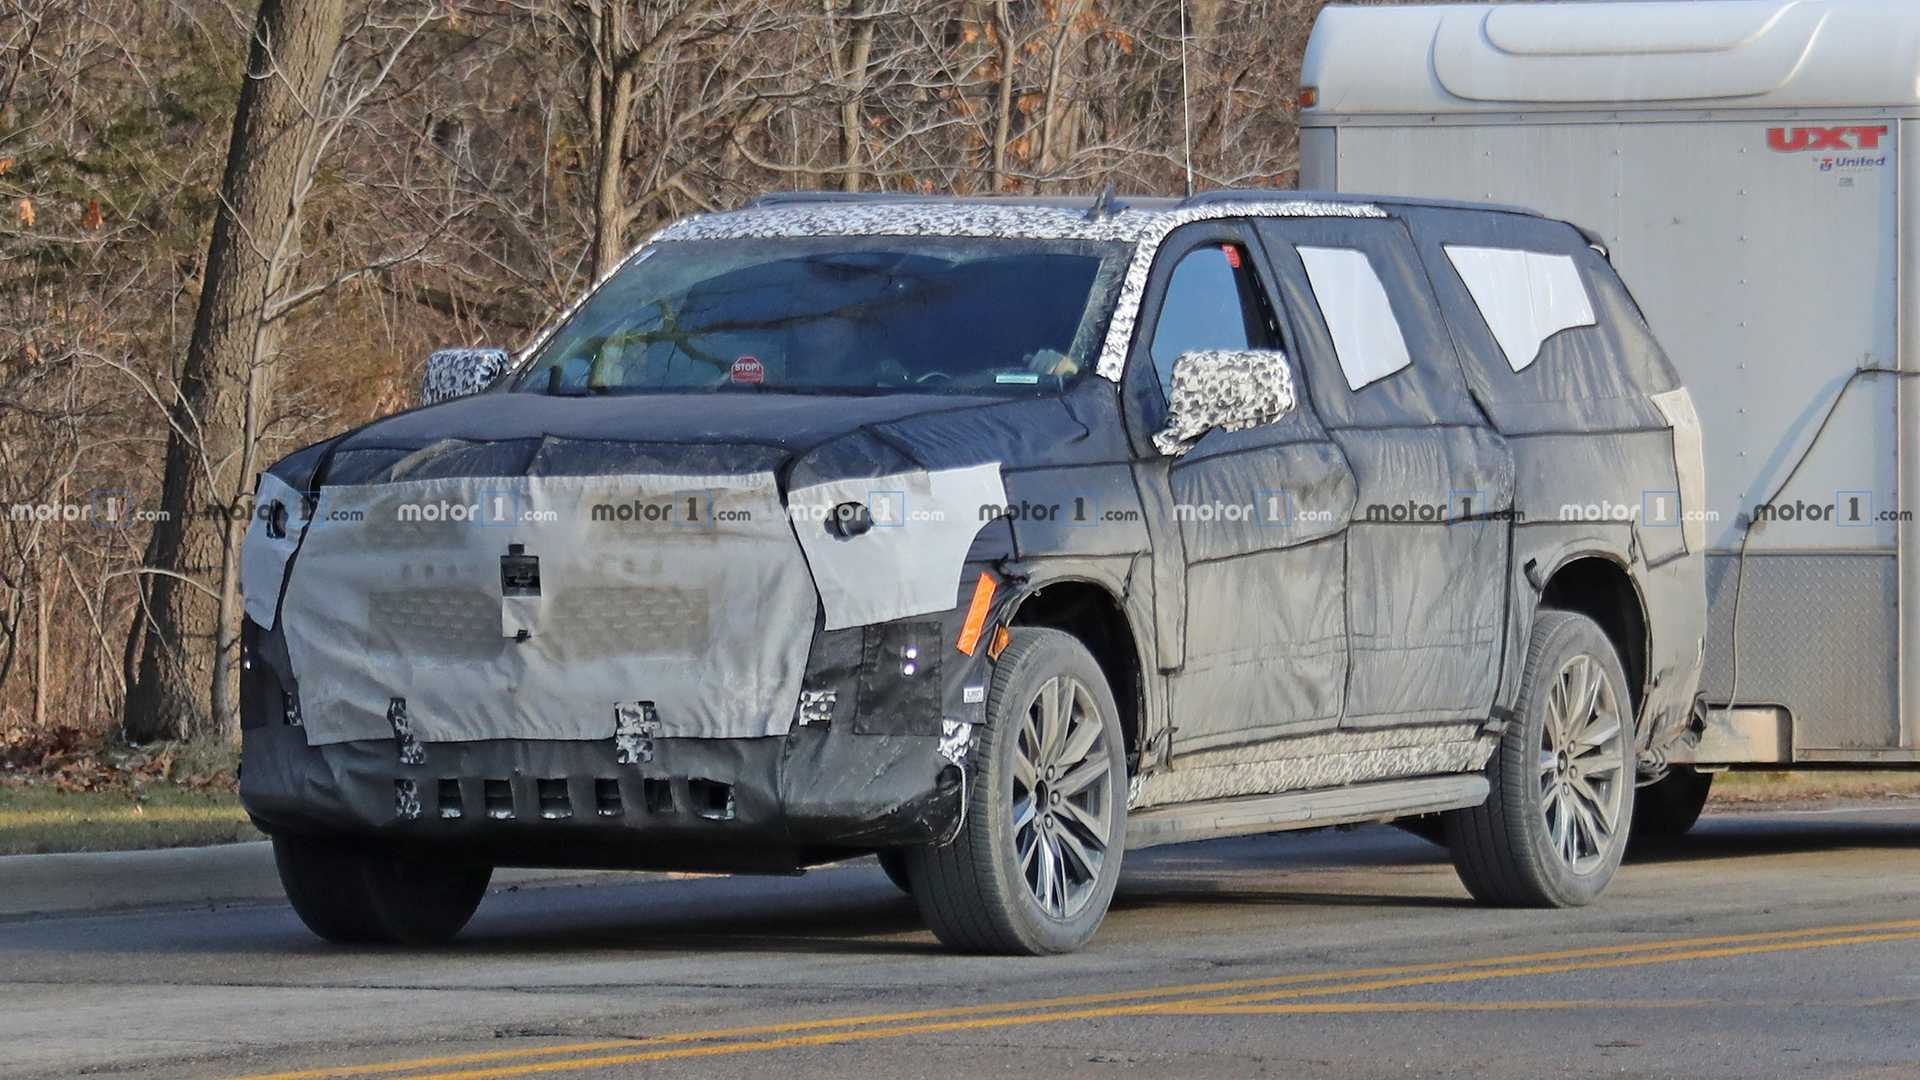 57 All New 2020 Cadillac Escalade Latest News Price and Review for 2020 Cadillac Escalade Latest News